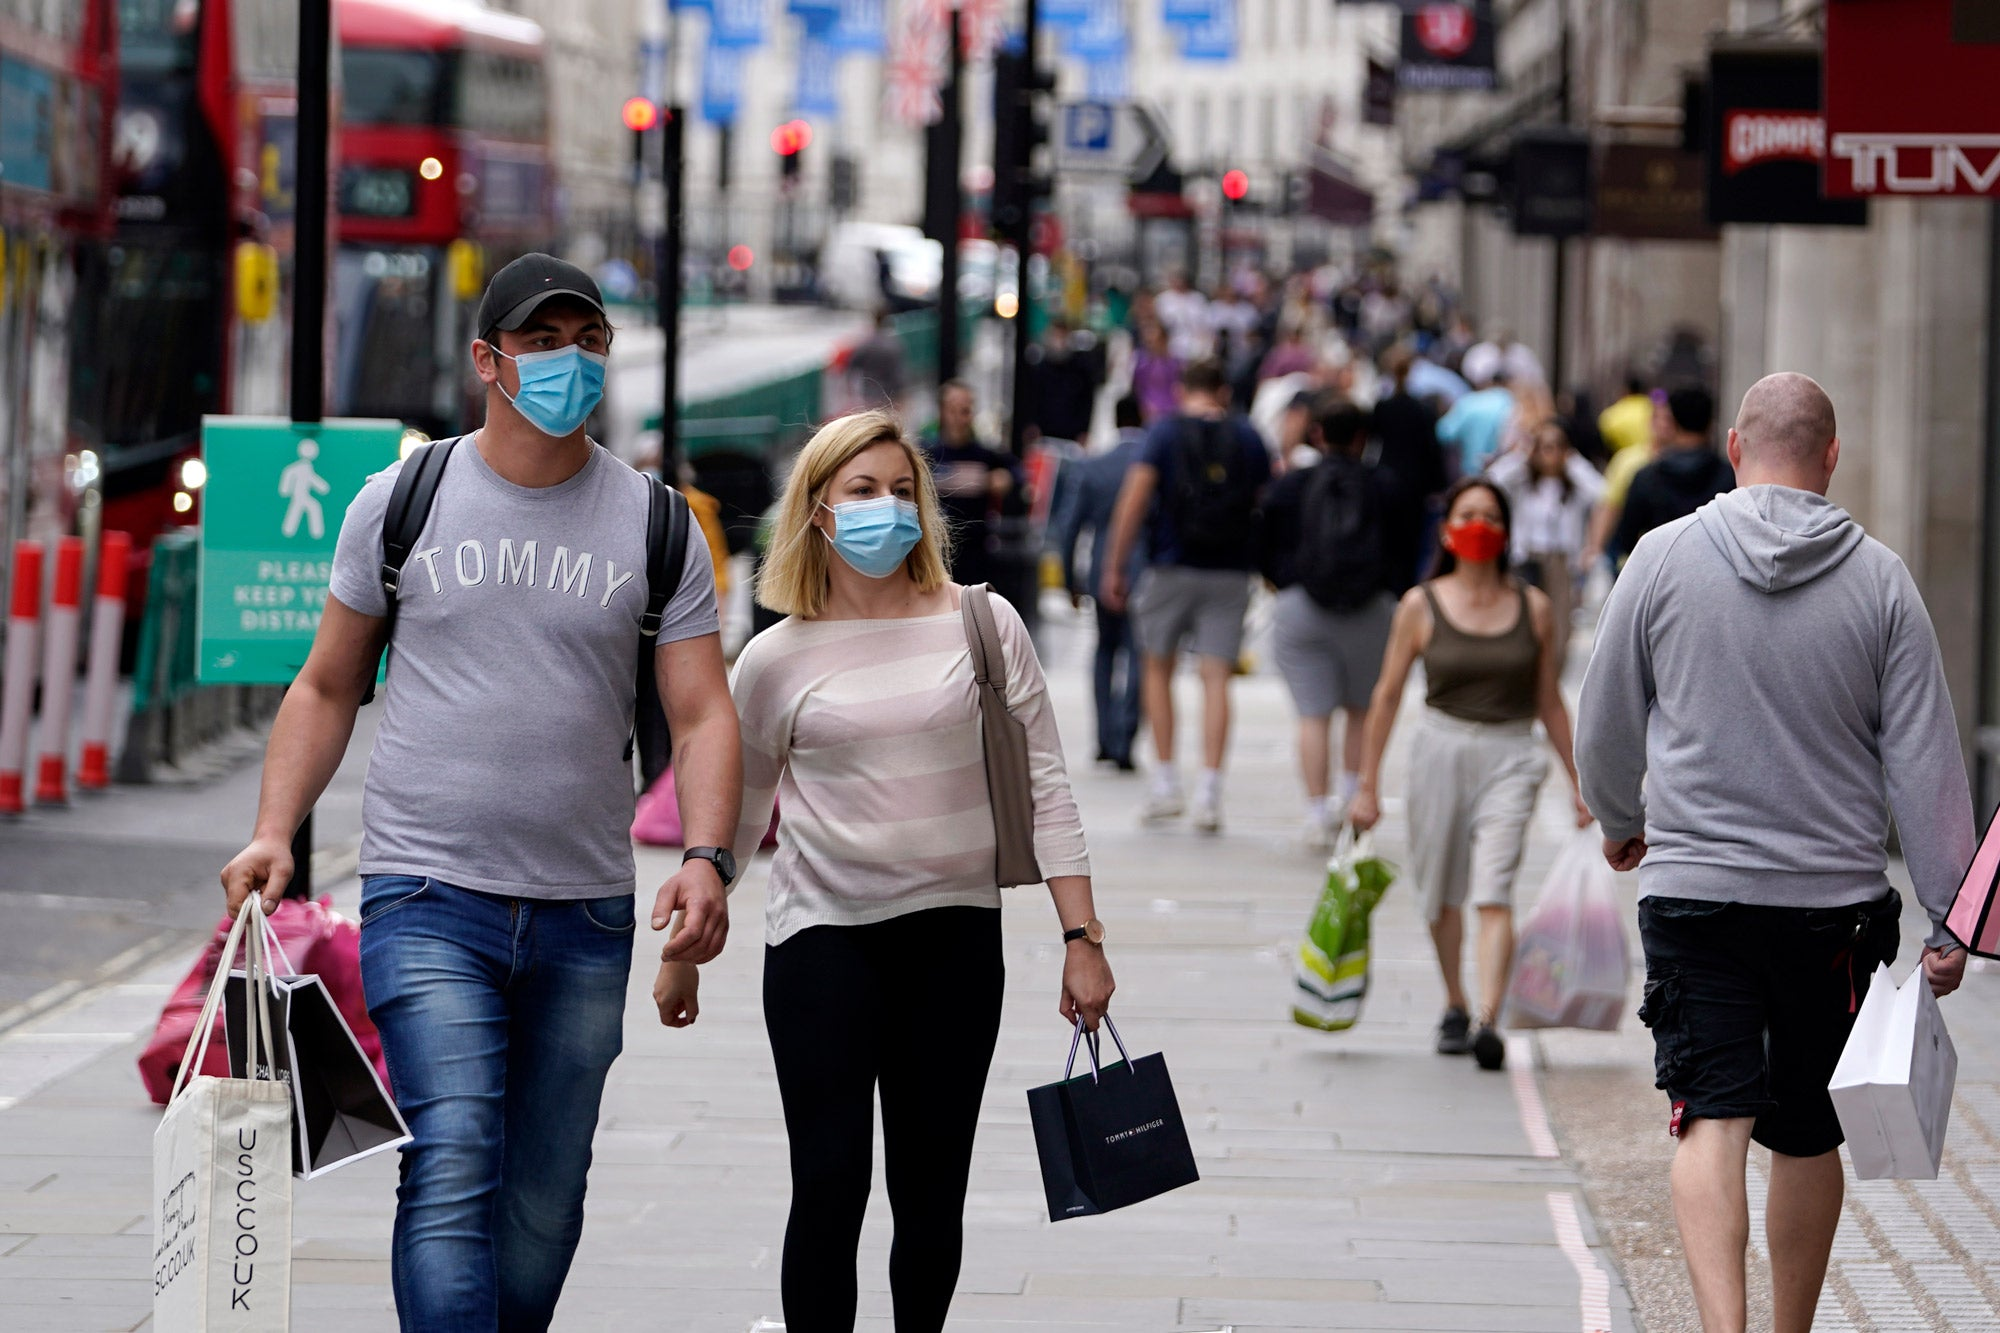 Couple walking while wearing masks